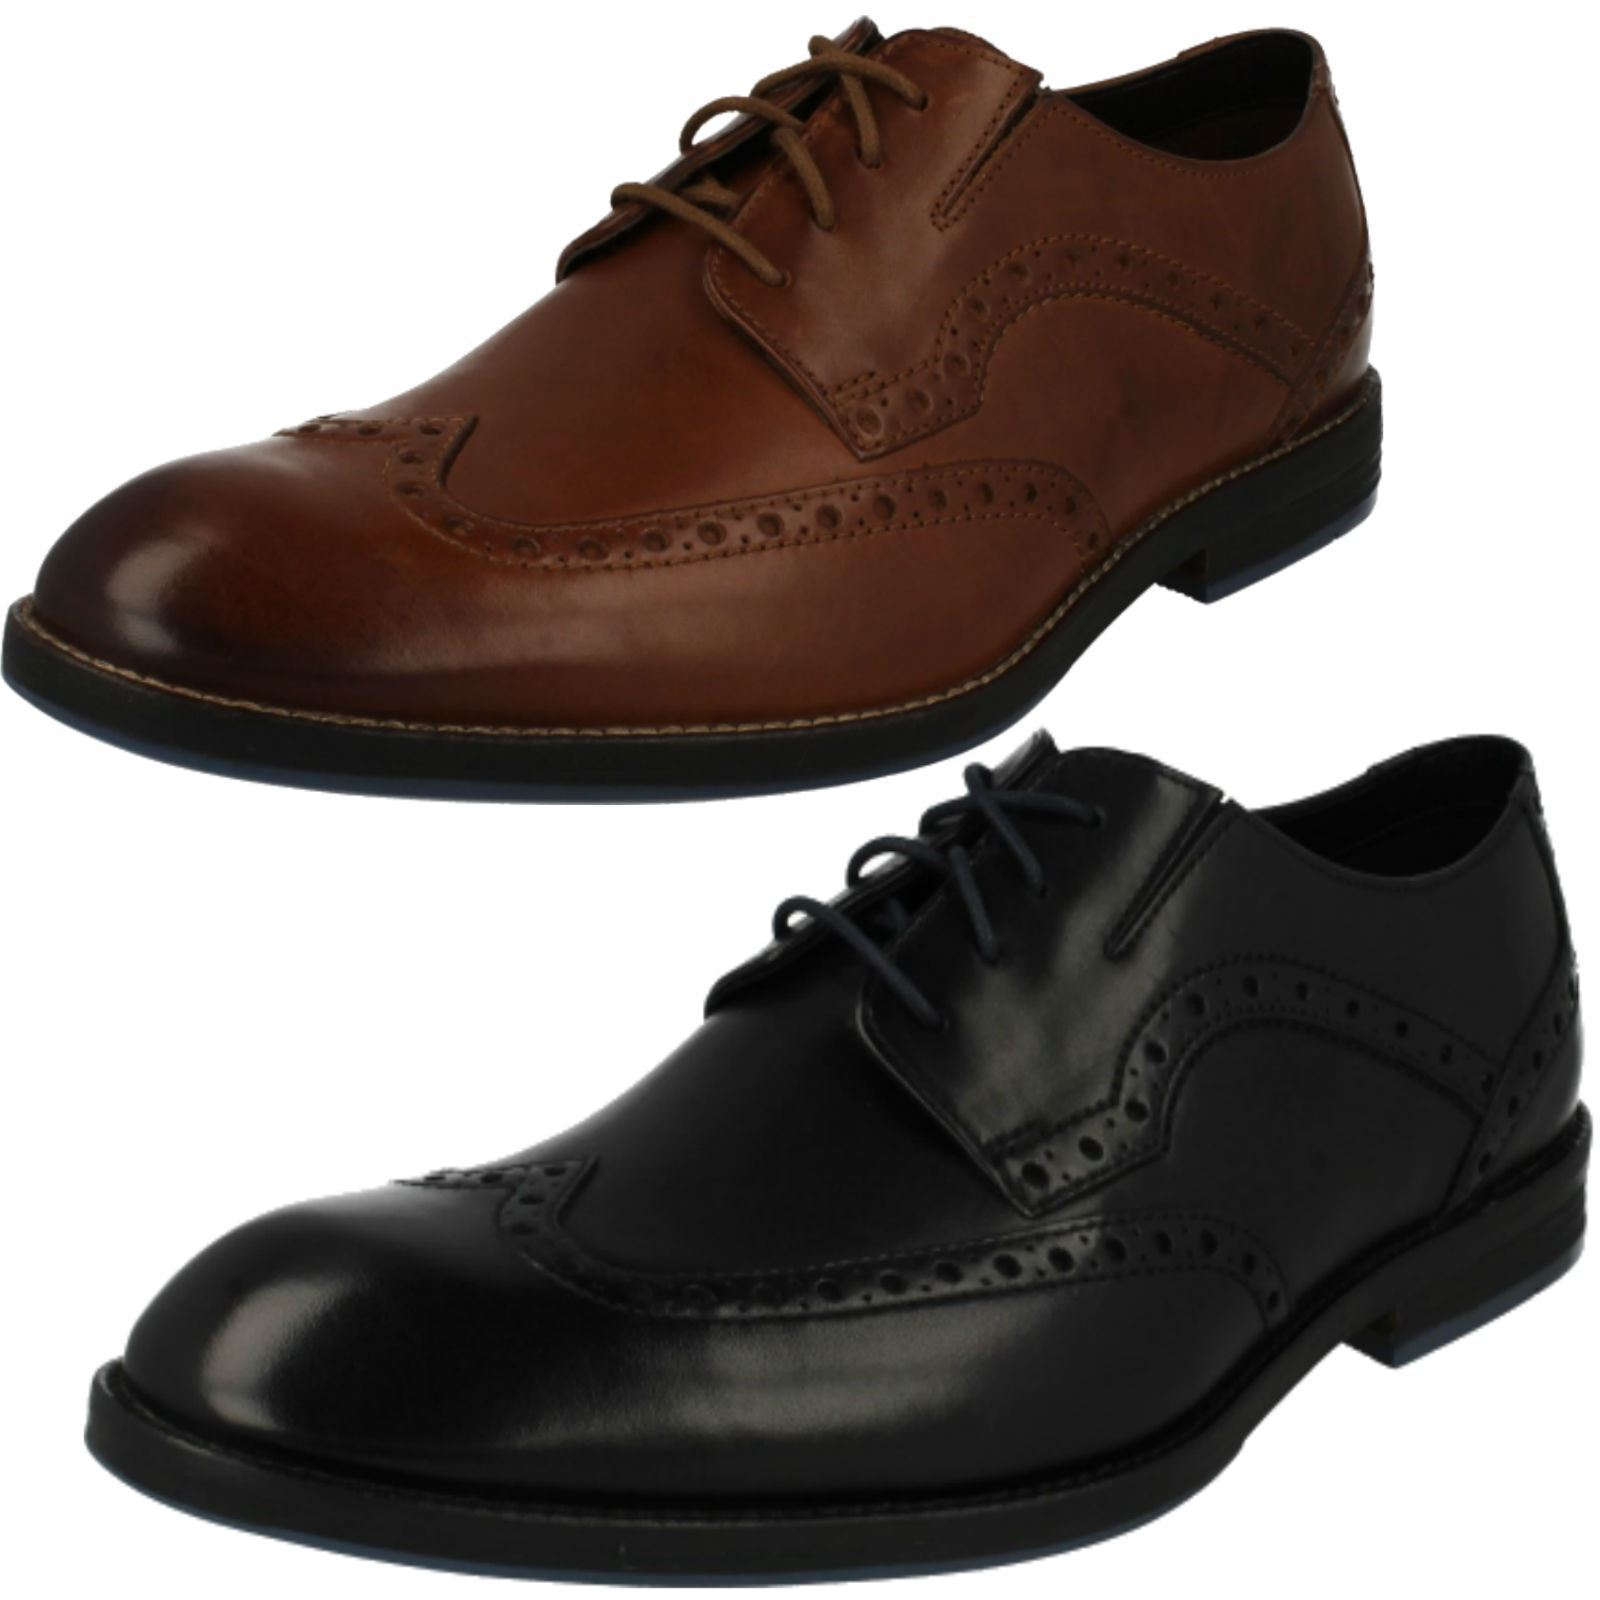 Mens Clarks Prangley Limit Formal Leather Lace Up shoes